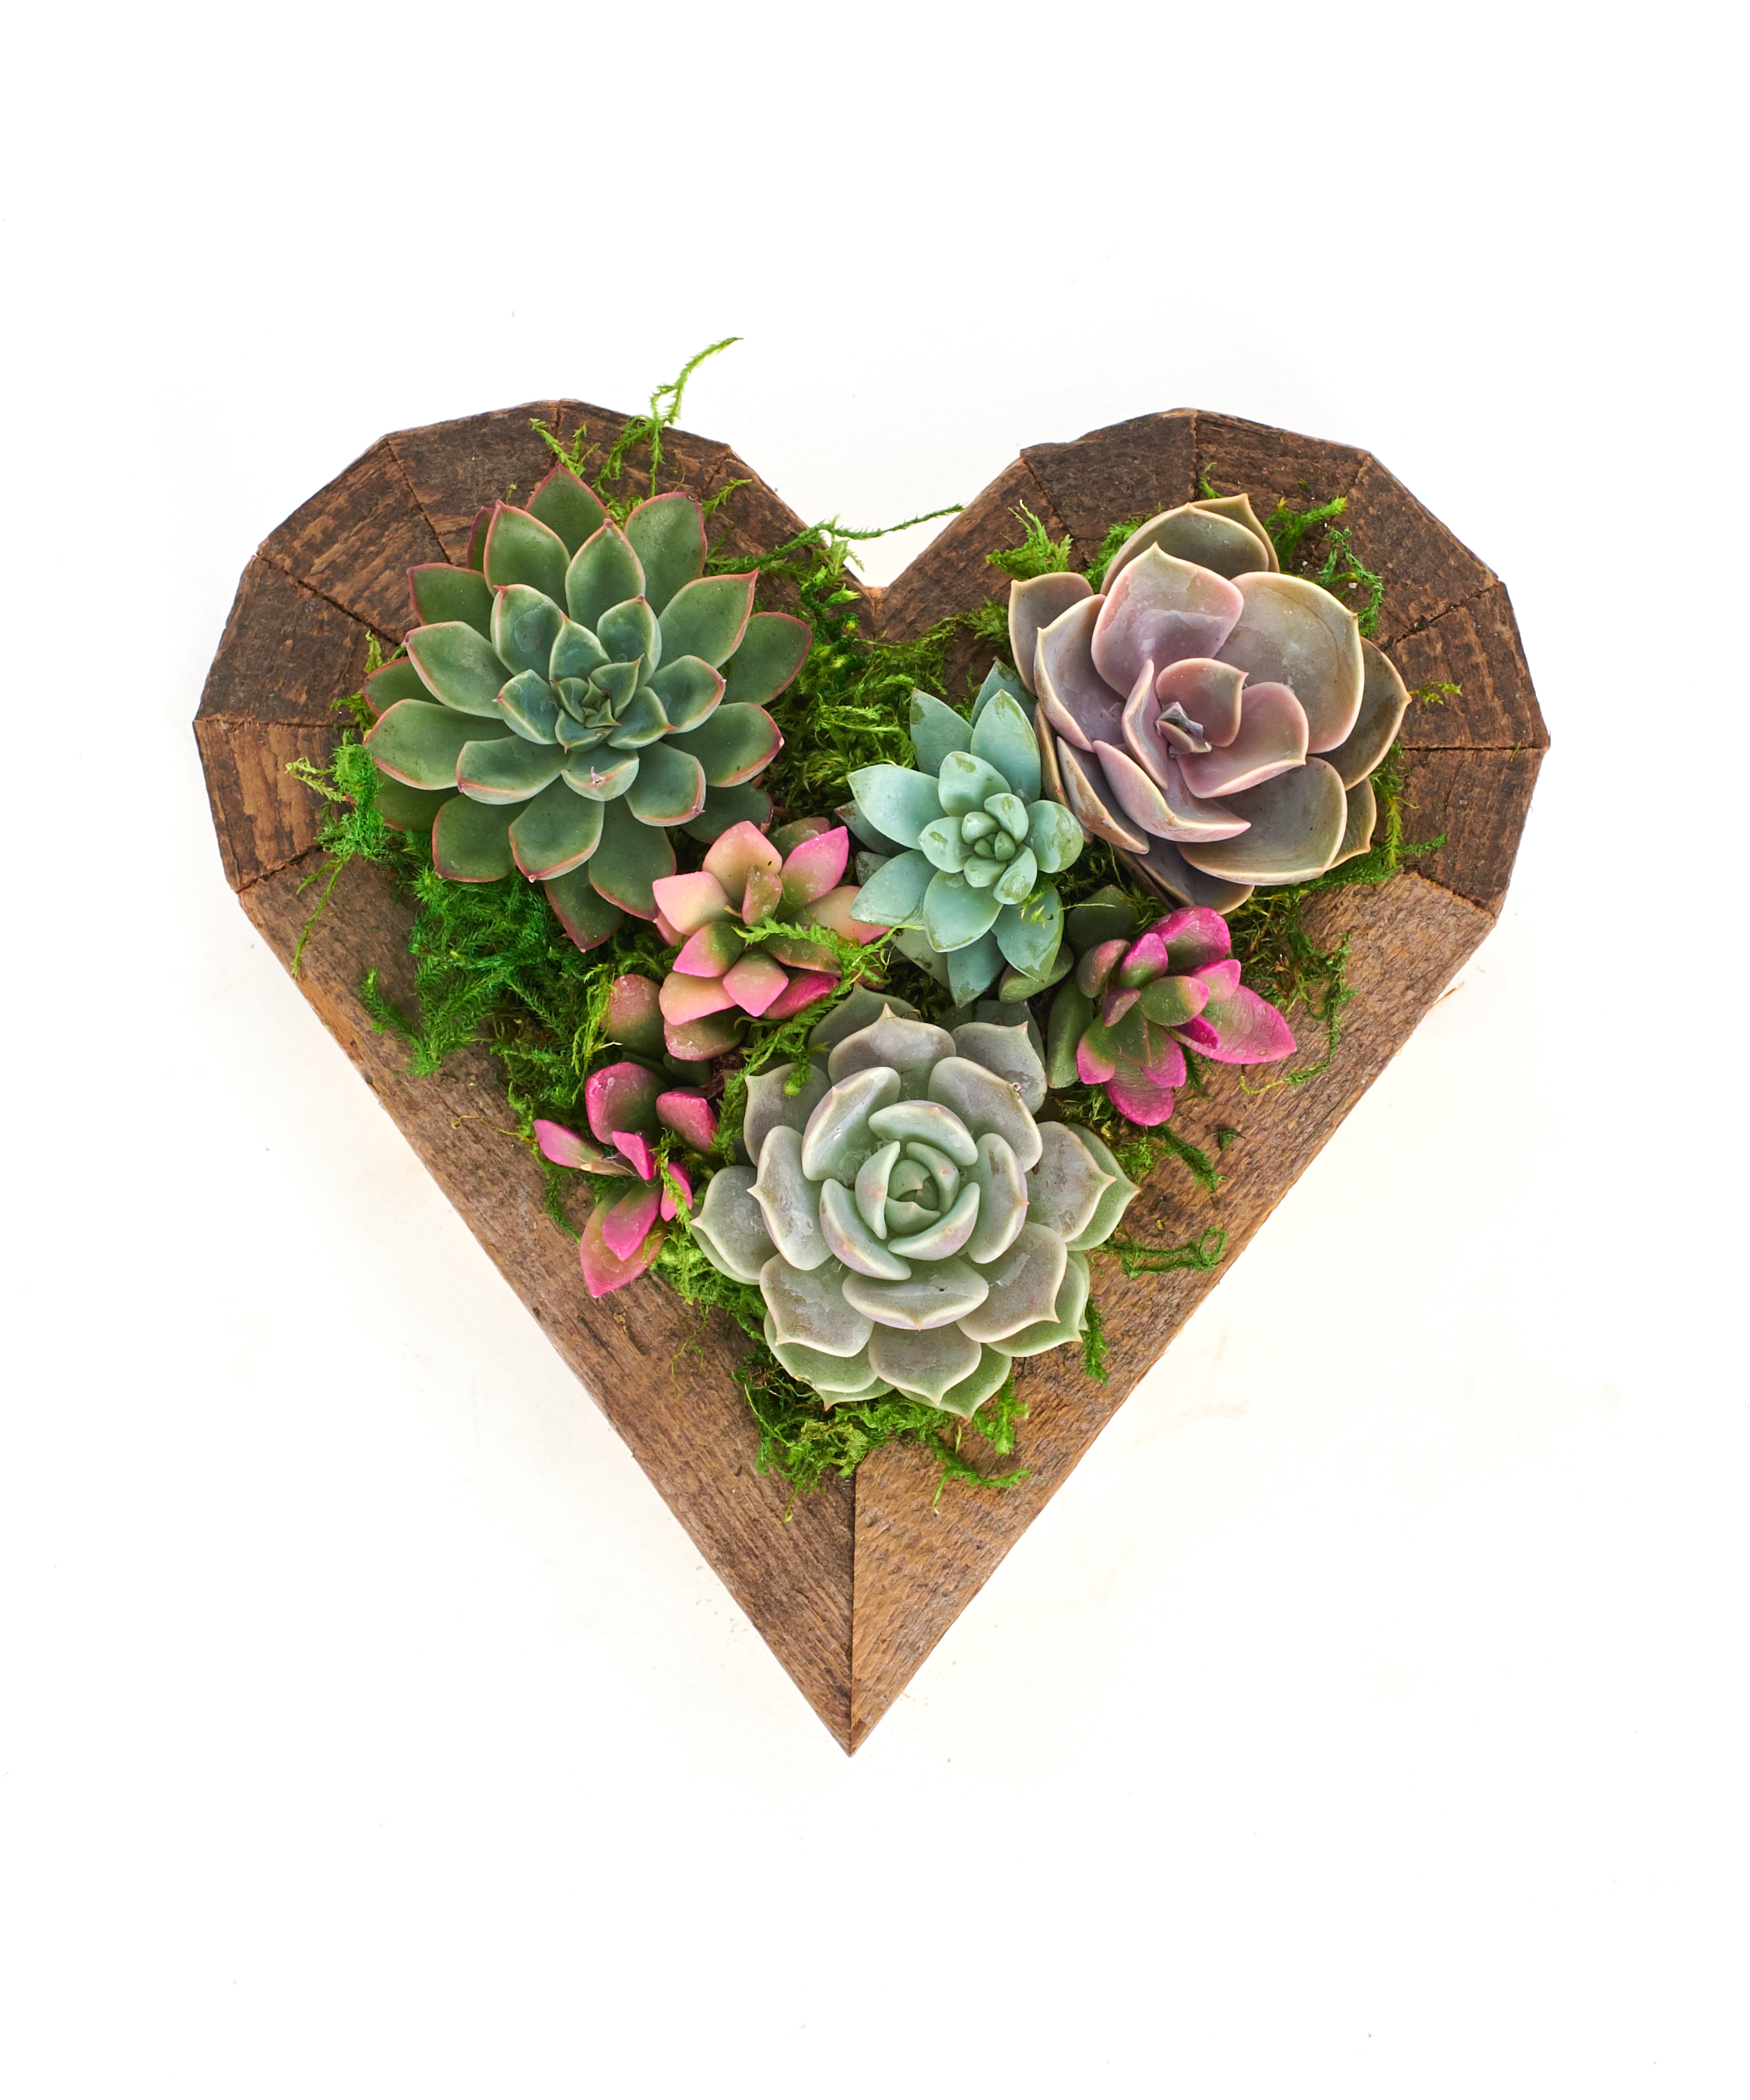 Living Succulent Heart Wood Planter Succulent Centerpiece